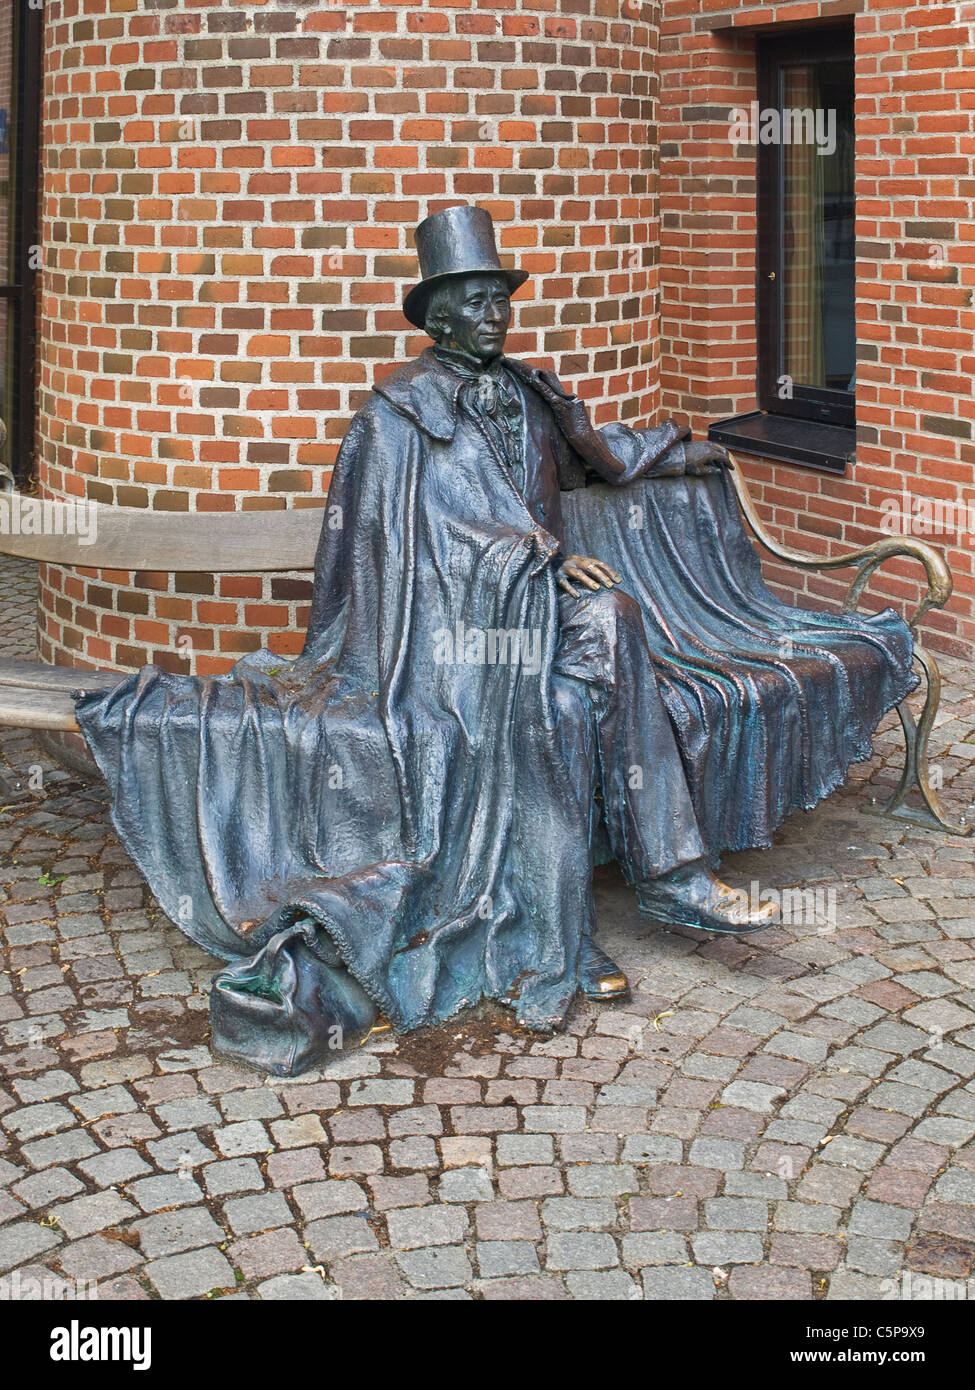 Sculpture of the poet and author Hans Christian Andersen, Odense Municipality, Region Syddanmark, Funen island, - Stock Image